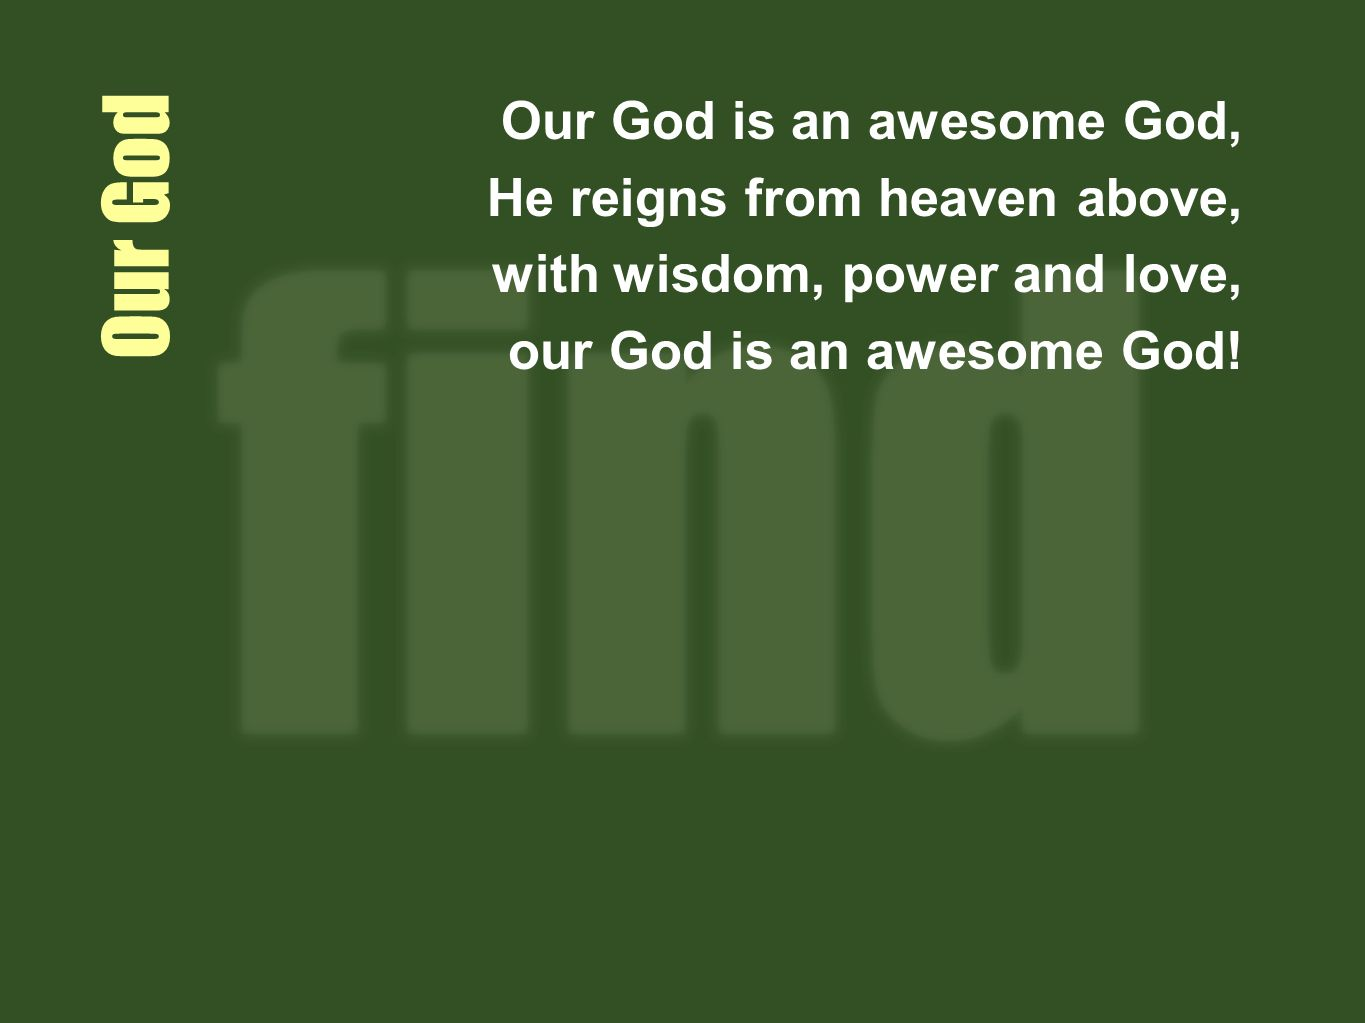 Our God Our God is an awesome God, He reigns from heaven above,